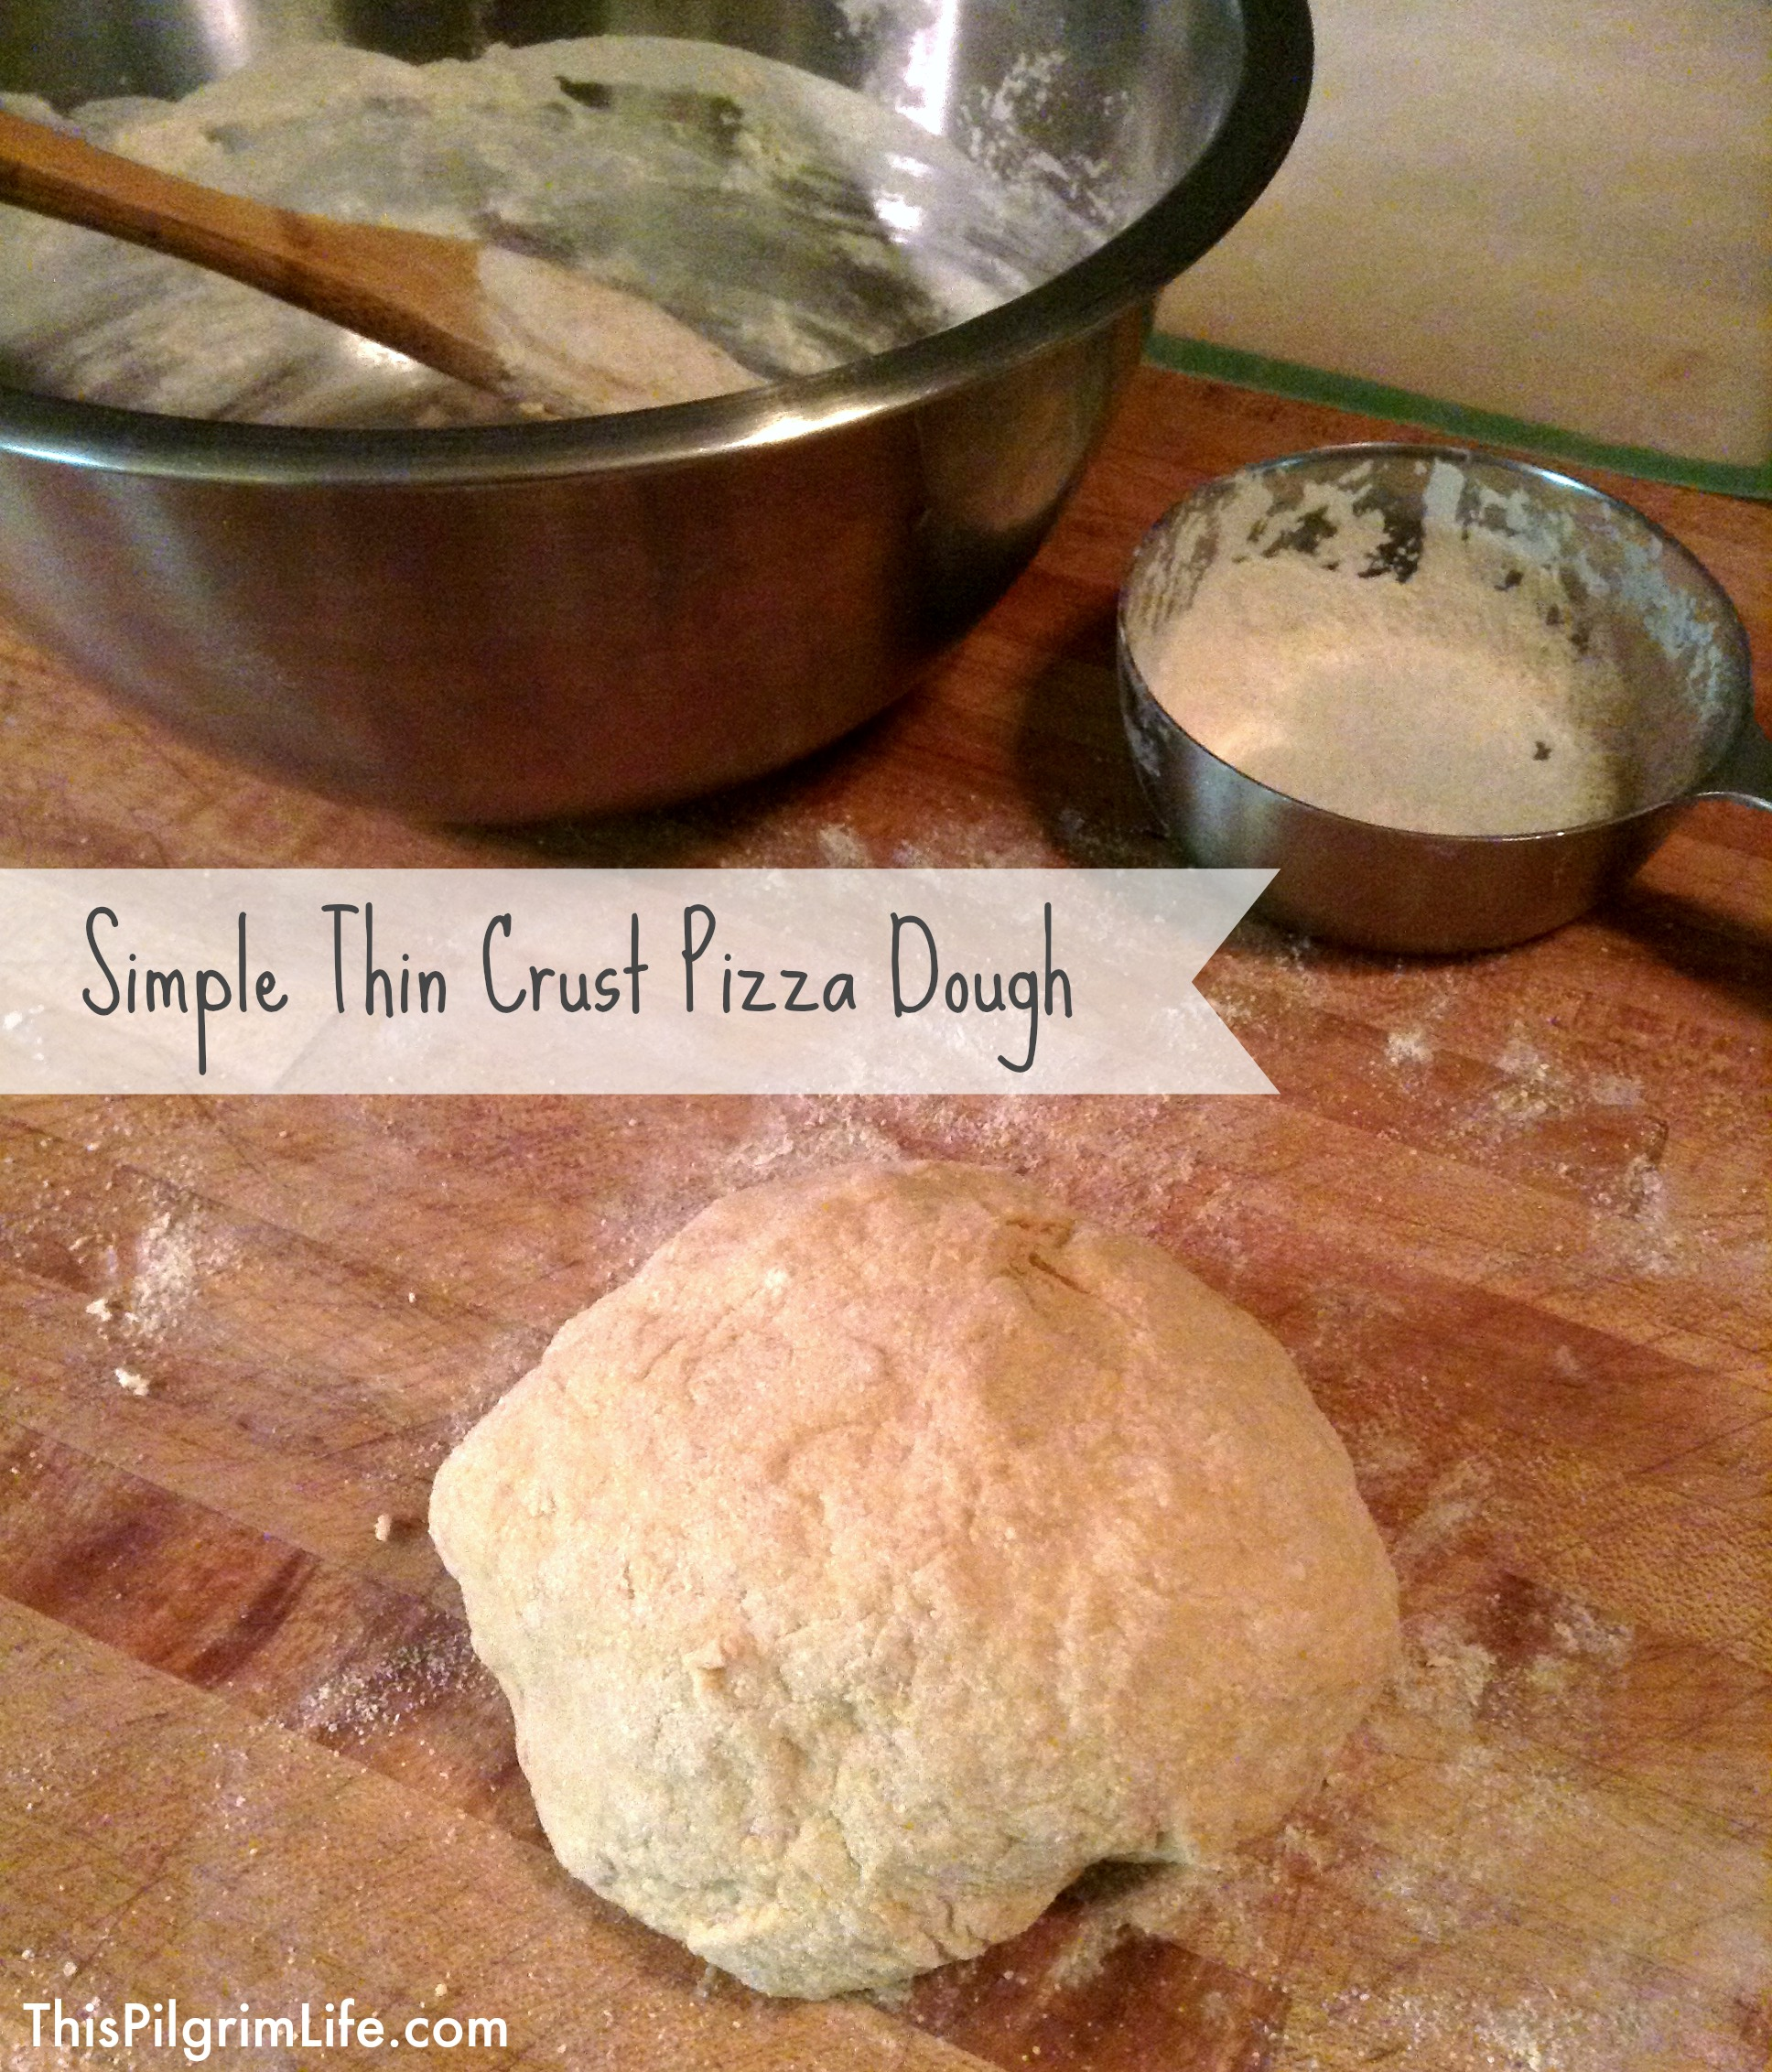 Simple Thin Crust Pizza Dough - This Pilgrim Life